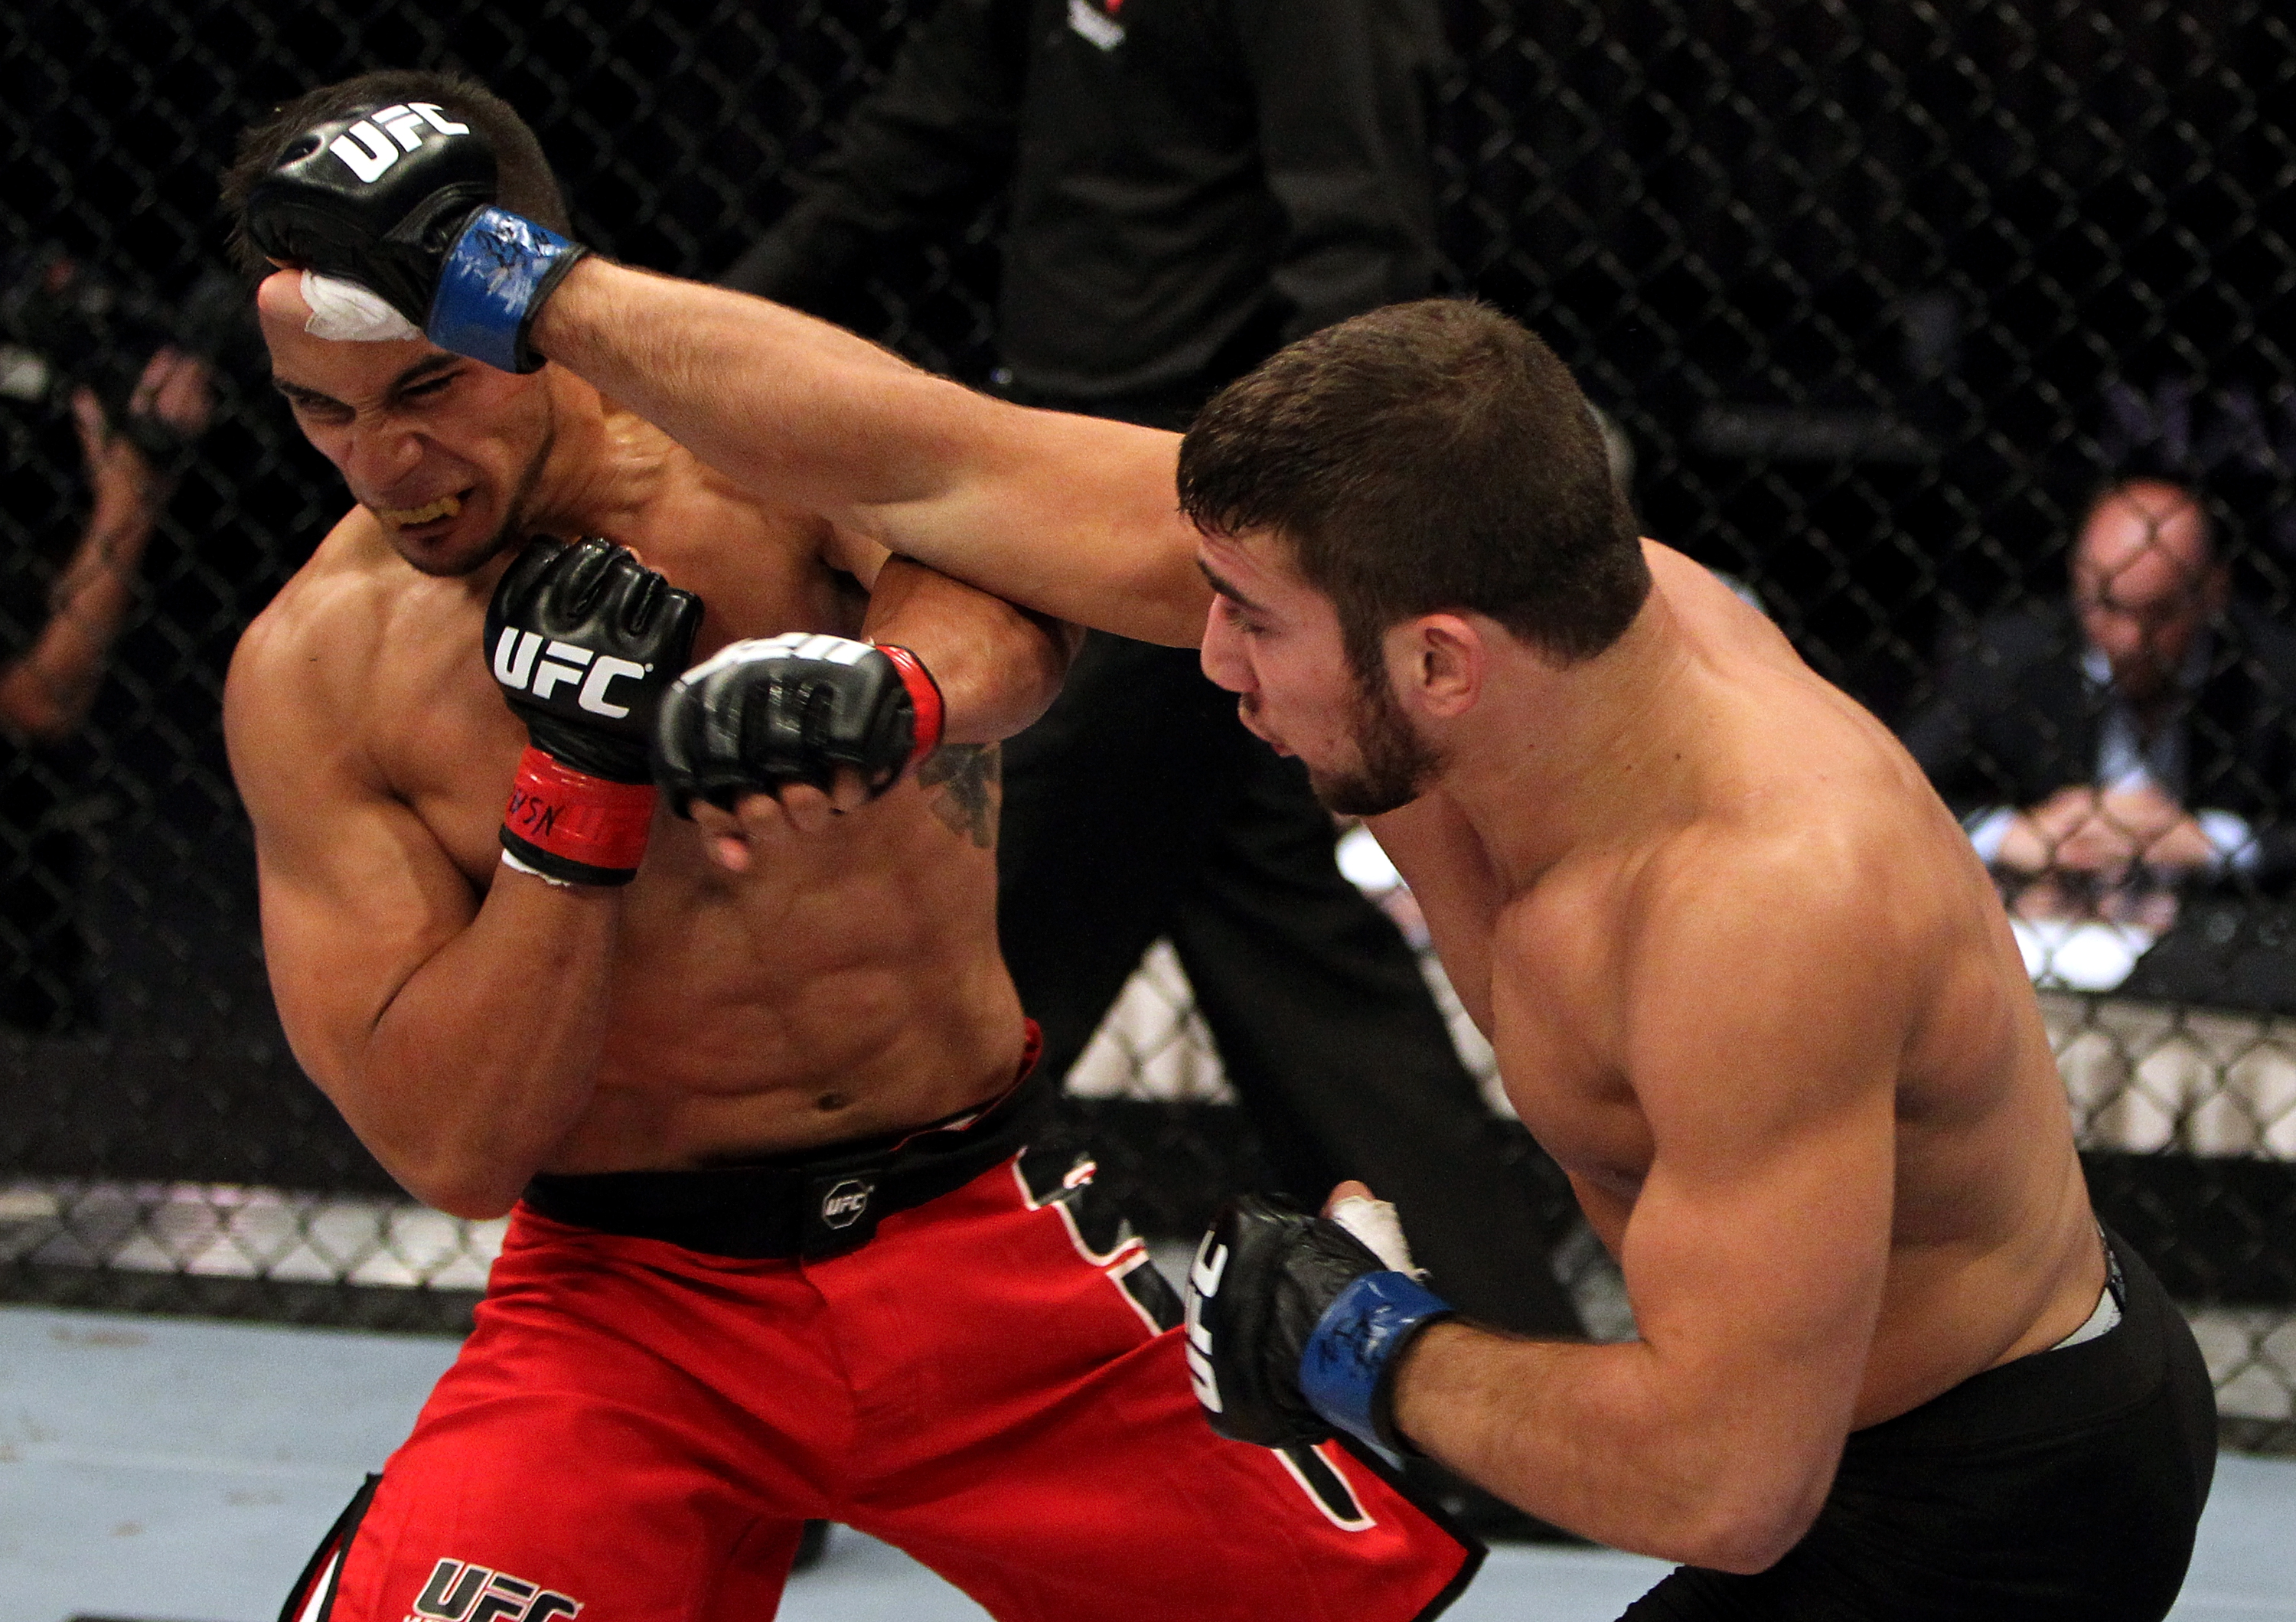 (R-L) Jimmie Rivera punches Dennis Bermudez during their Featherweight bout at the TUF 14 Elimination fights inside the Mandalay Bay Events Center on June 7, 2011 in Las Vegas, Nevada. (Photo by Josh Hedges/Zuffa LLC)